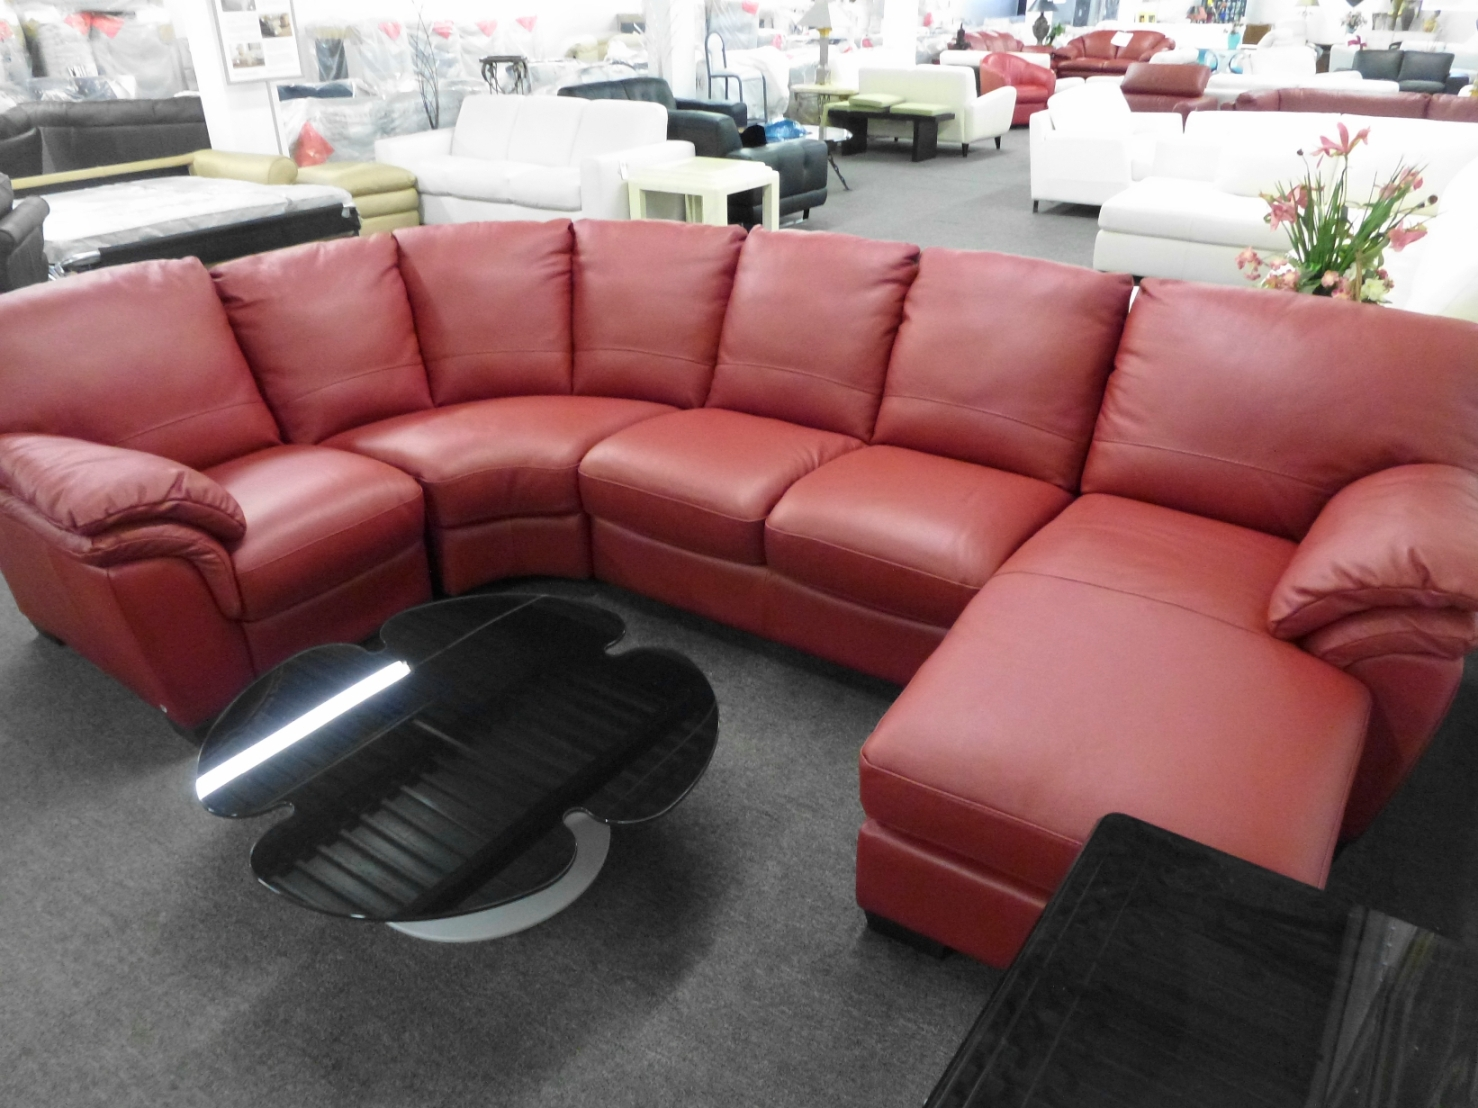 Italsofa Red Leather Sectional I130 Sale $2799.00